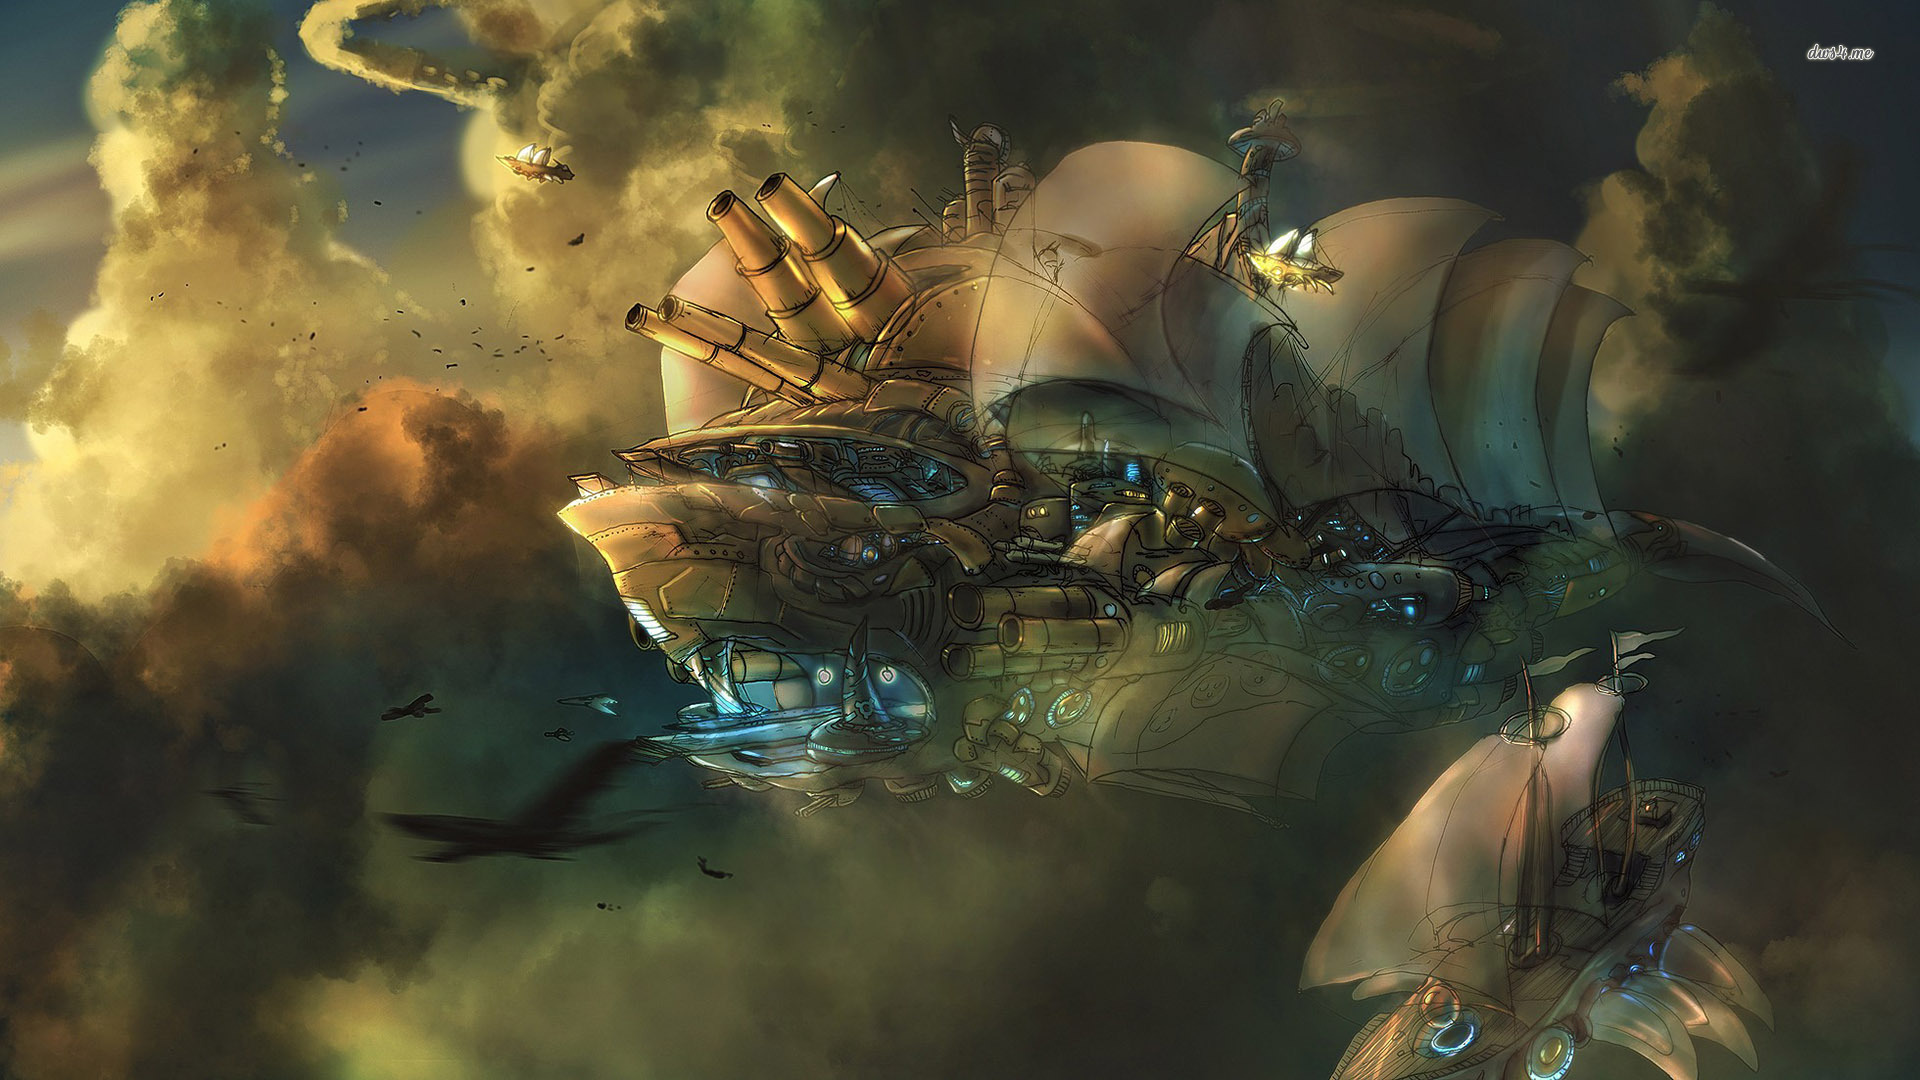 Flying steampunk battleship wallpapers and images   wallpapers 1920x1080